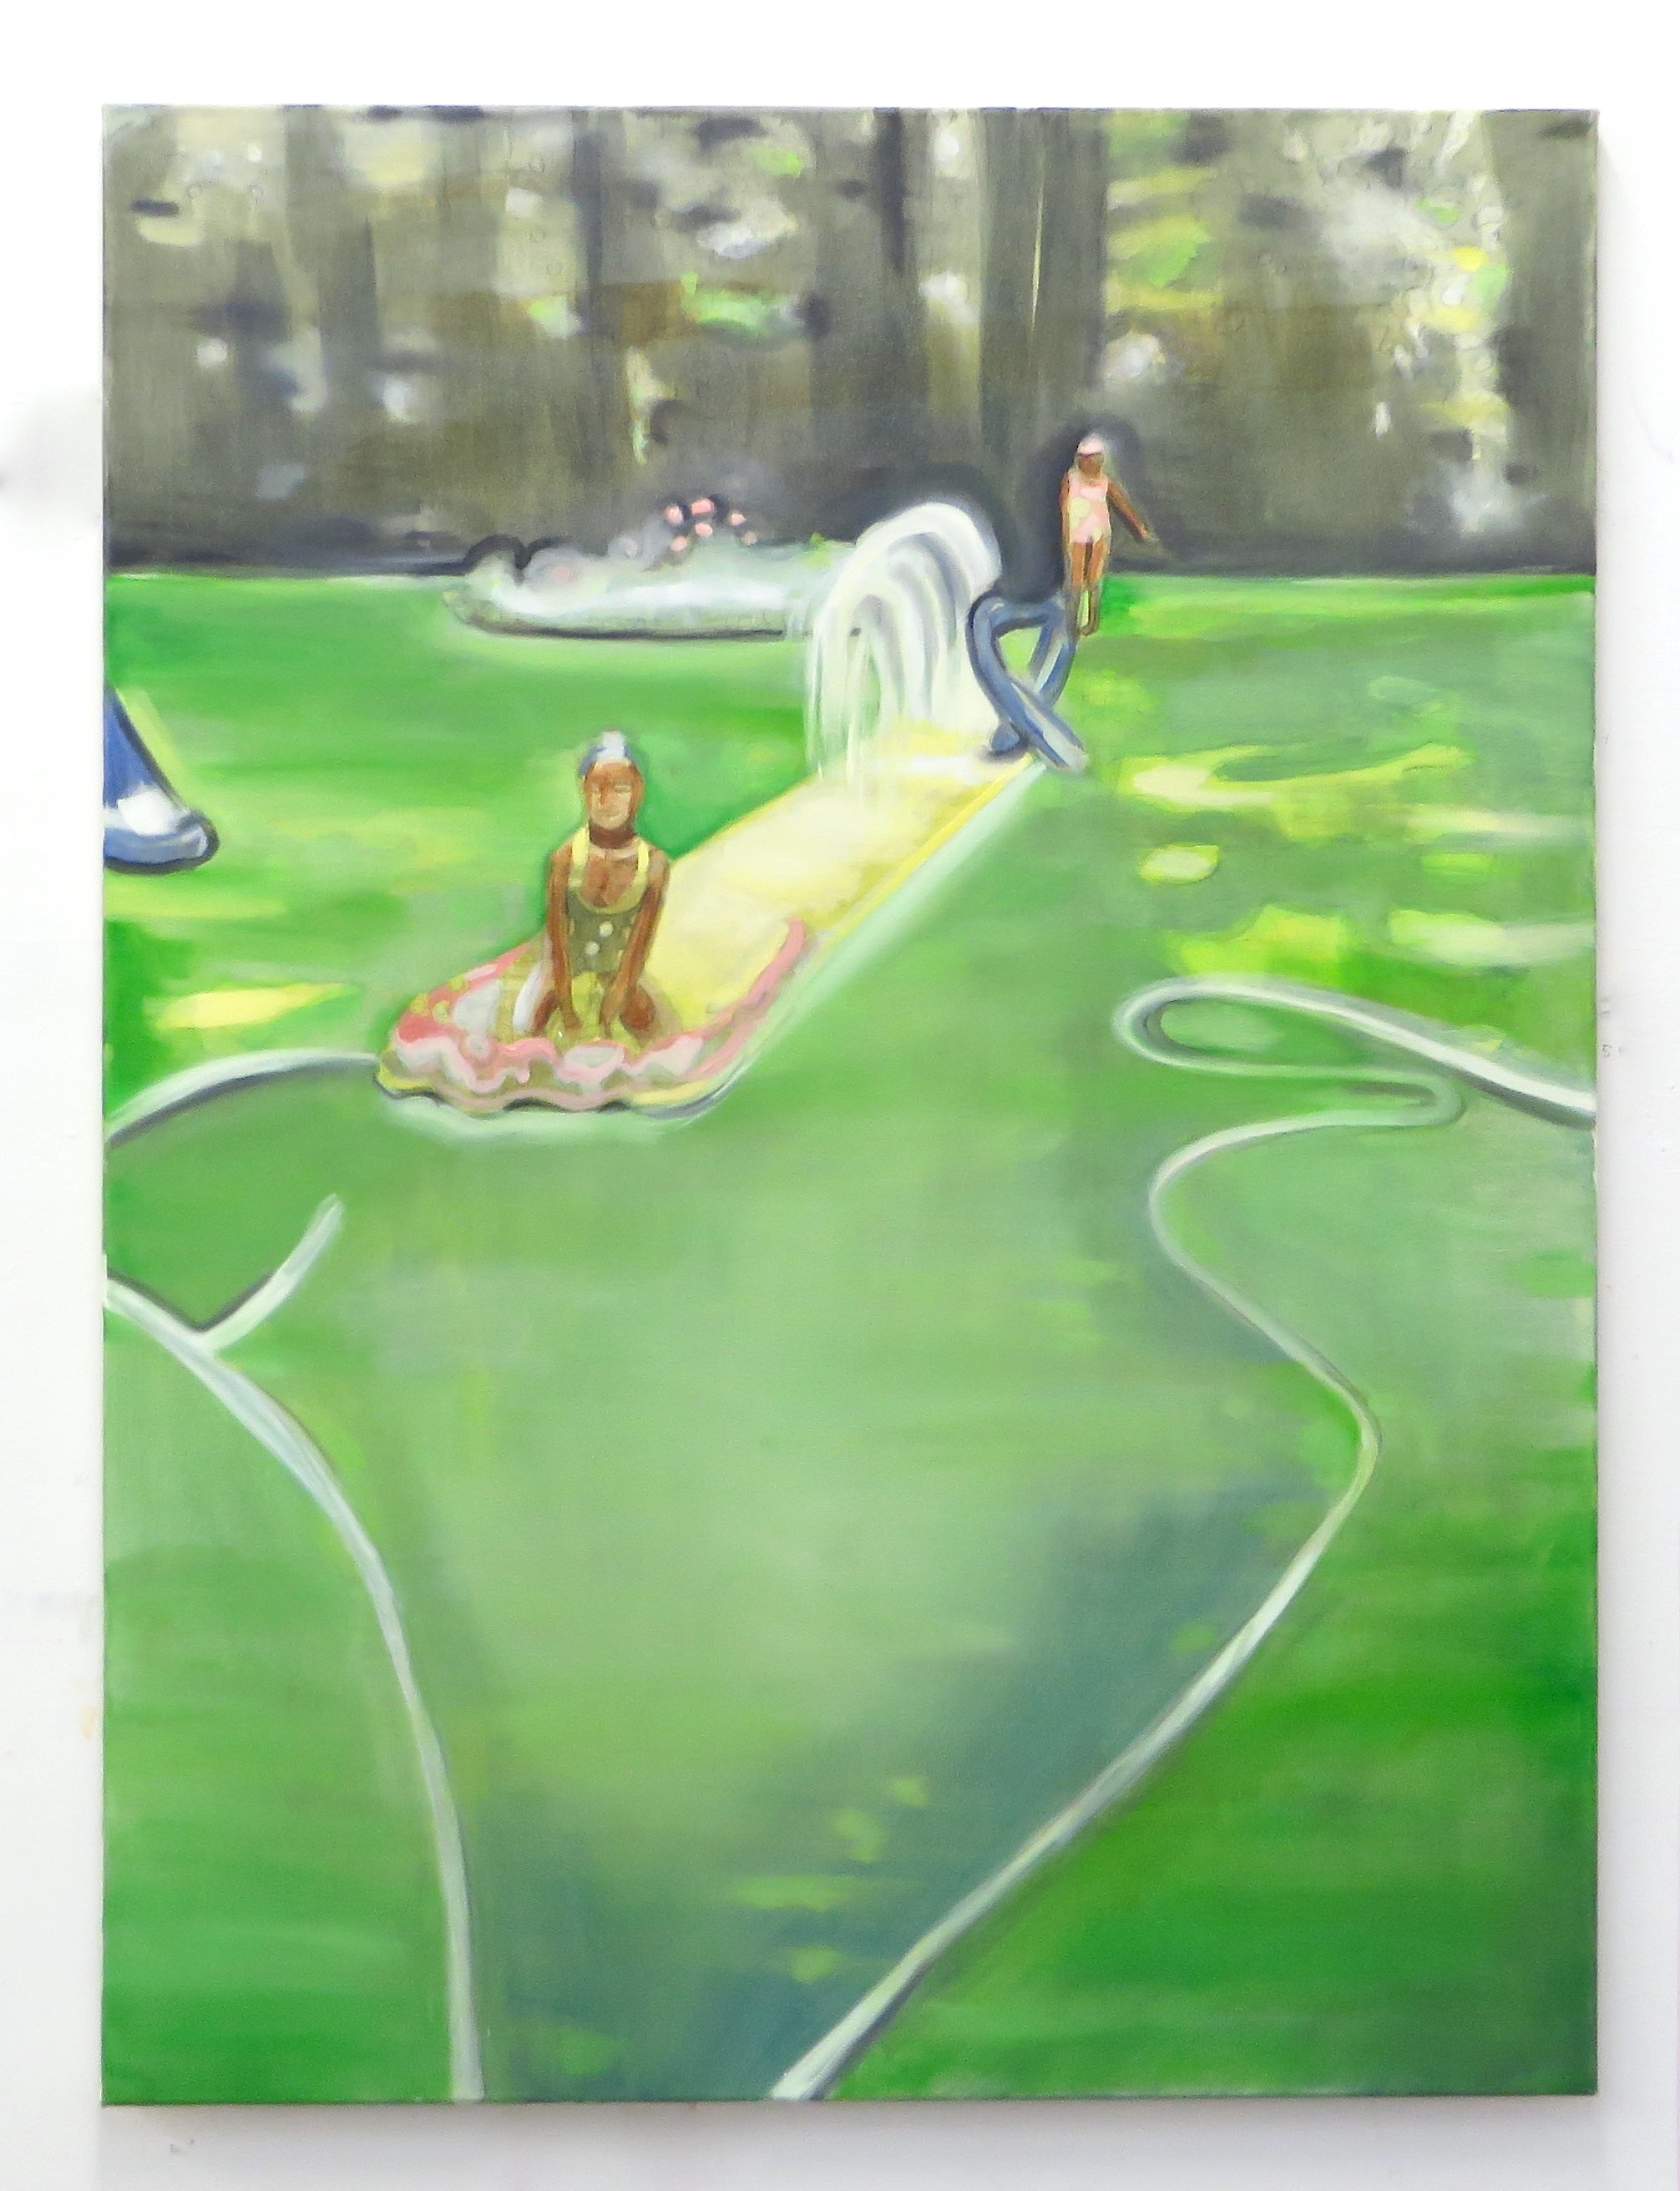 Slip n Slide , 2017 Oil on canvas 40 x 30 inches 100 x 76 cm